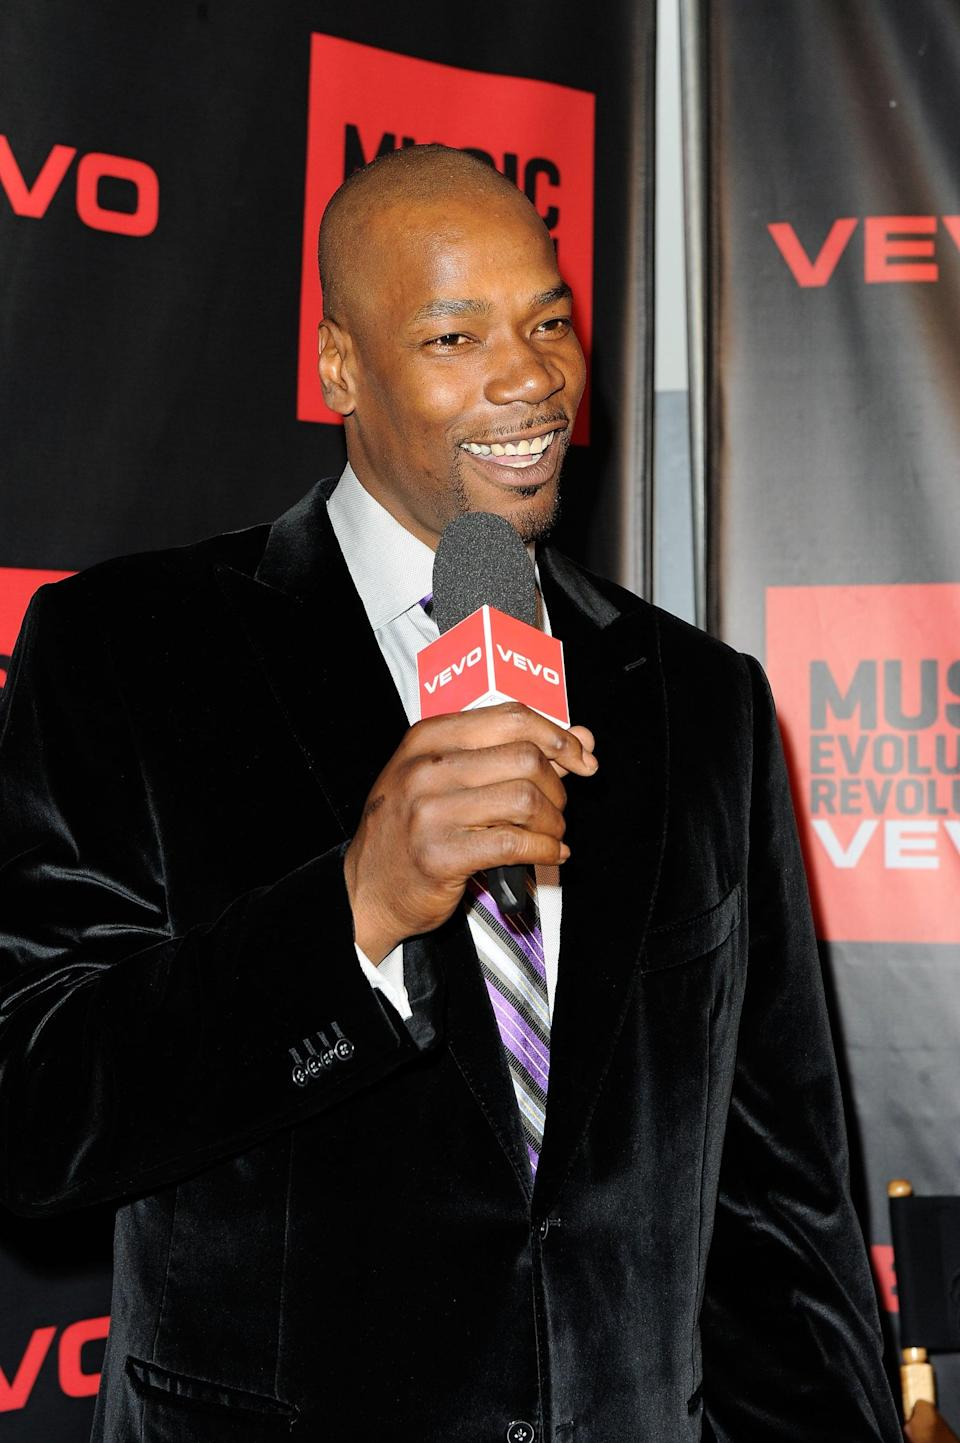 <p>The former <span>NBA player and <strong>Survivor</strong> contestant</span> died at age 53 in August.</p>